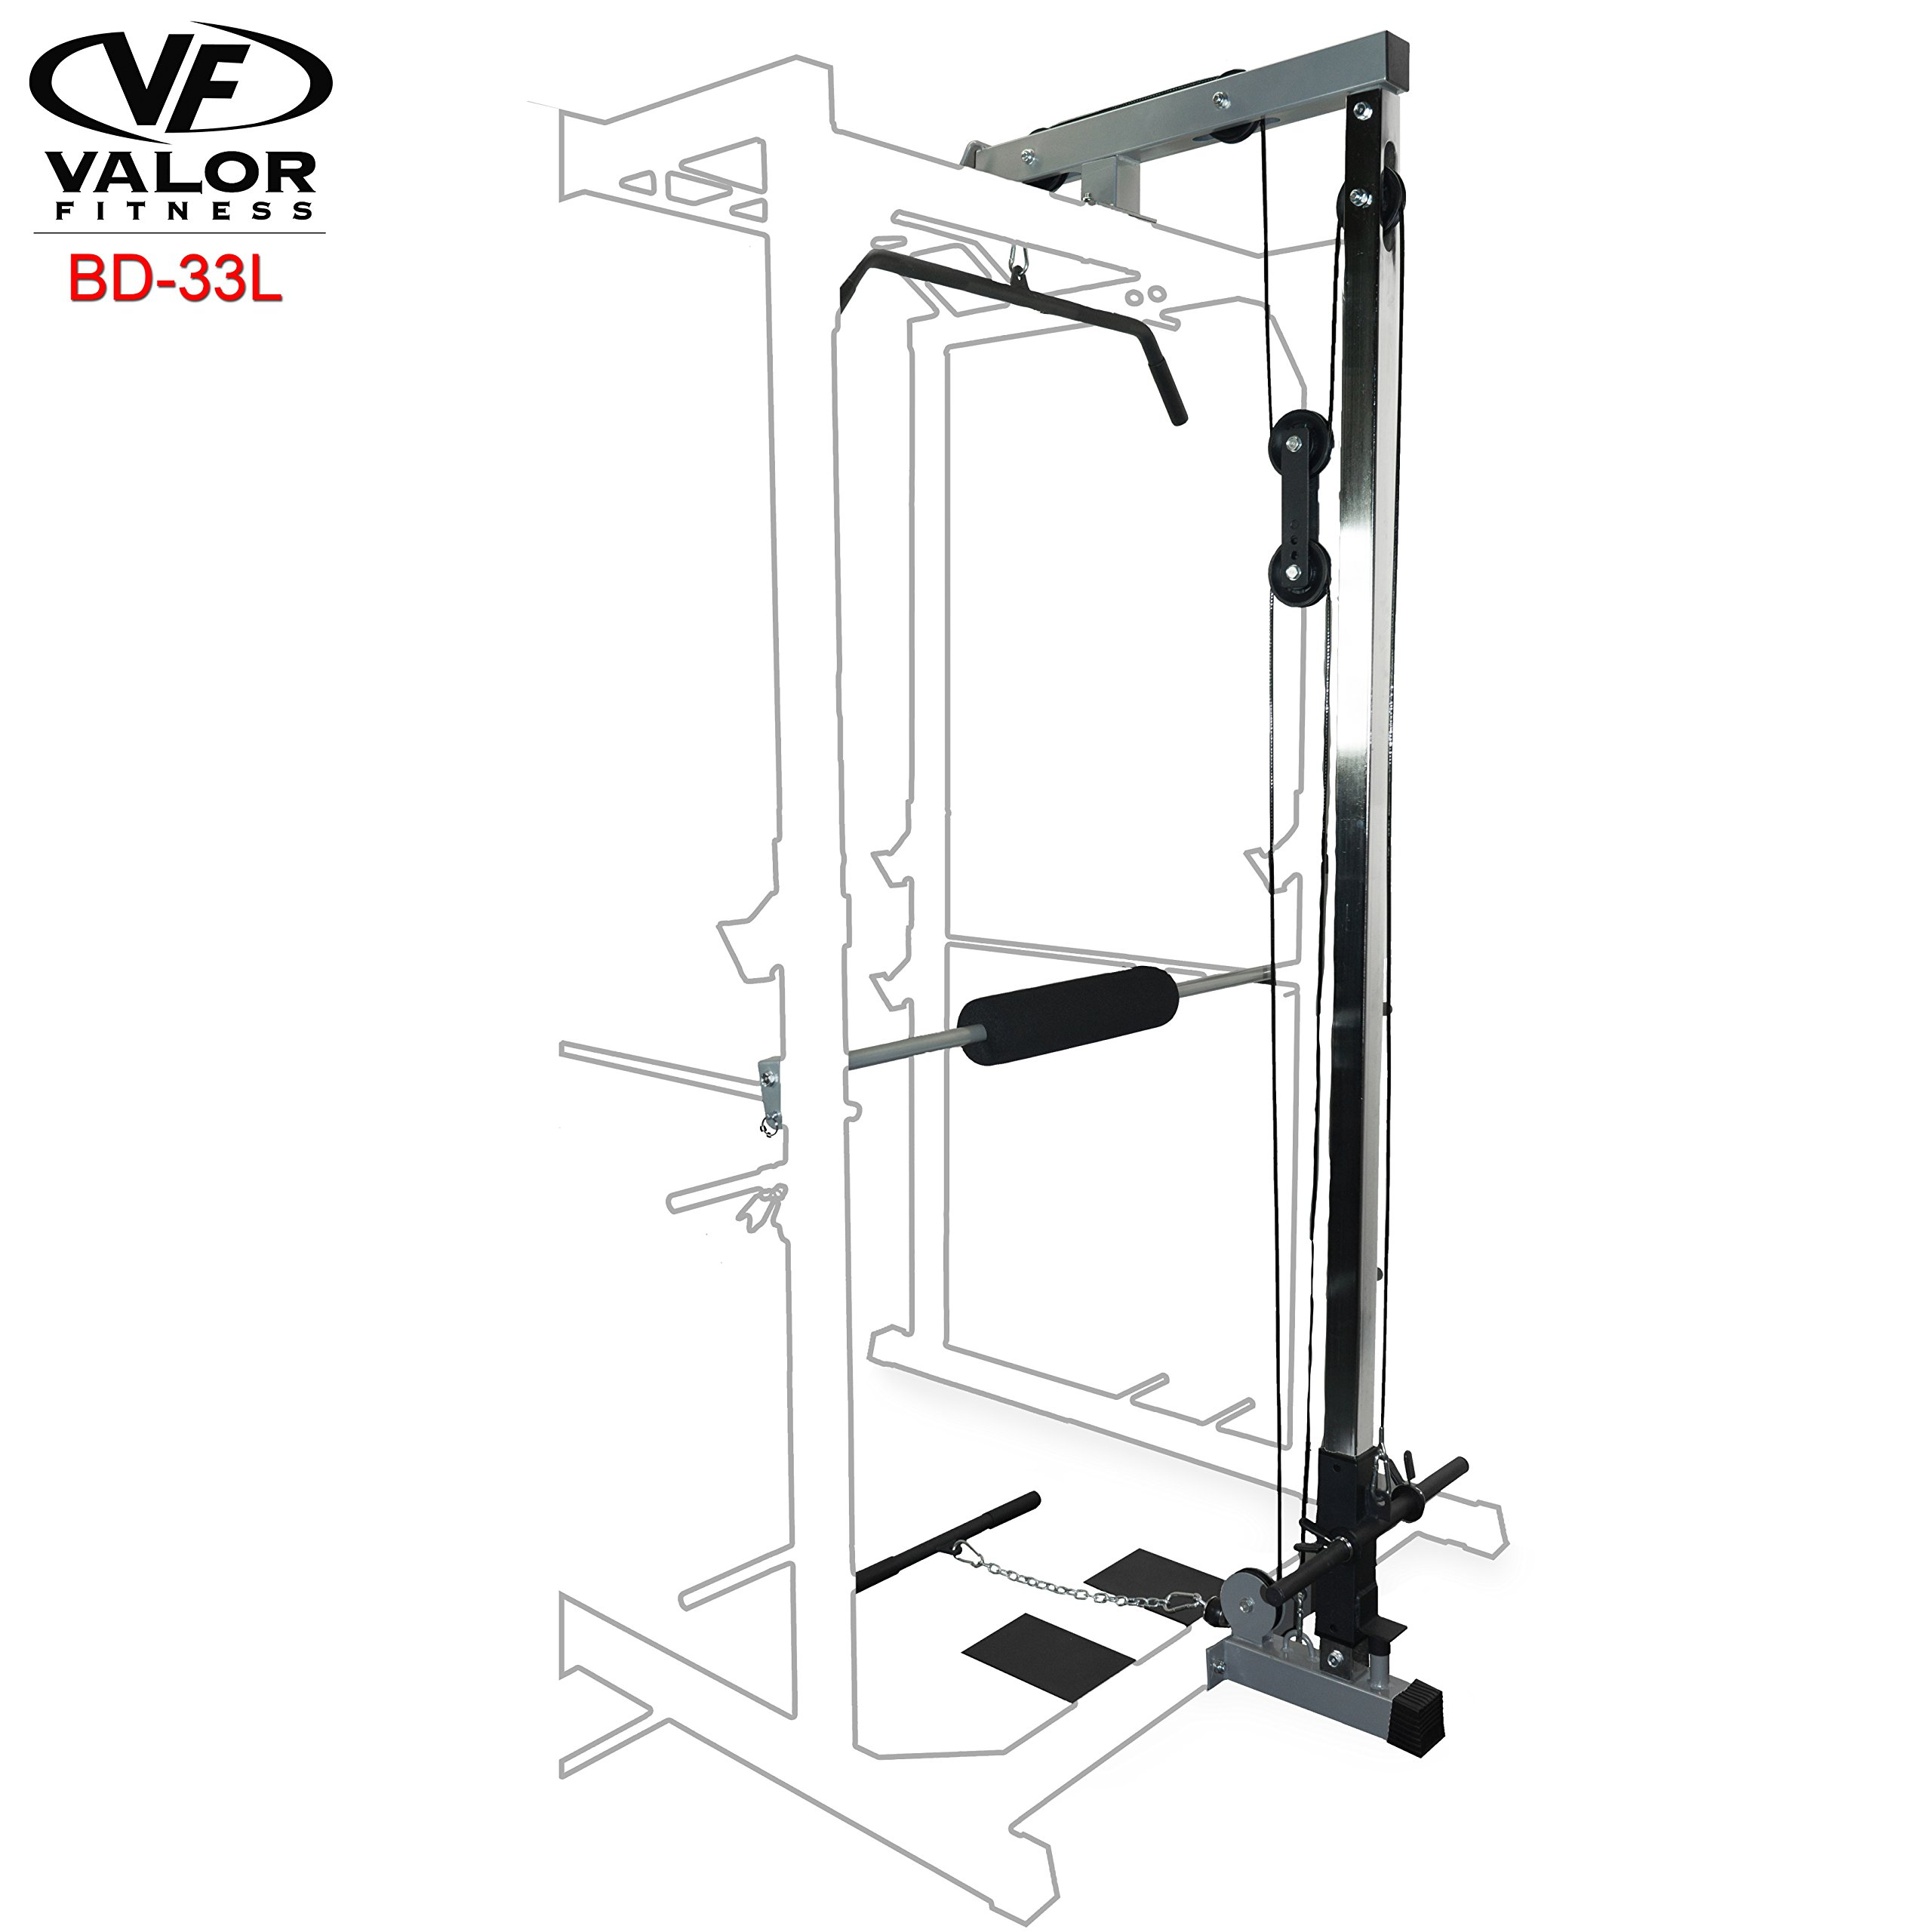 Valor Fitness Lat Pull for BD-33 Heavy Duty Power Cage by Valor Fitness